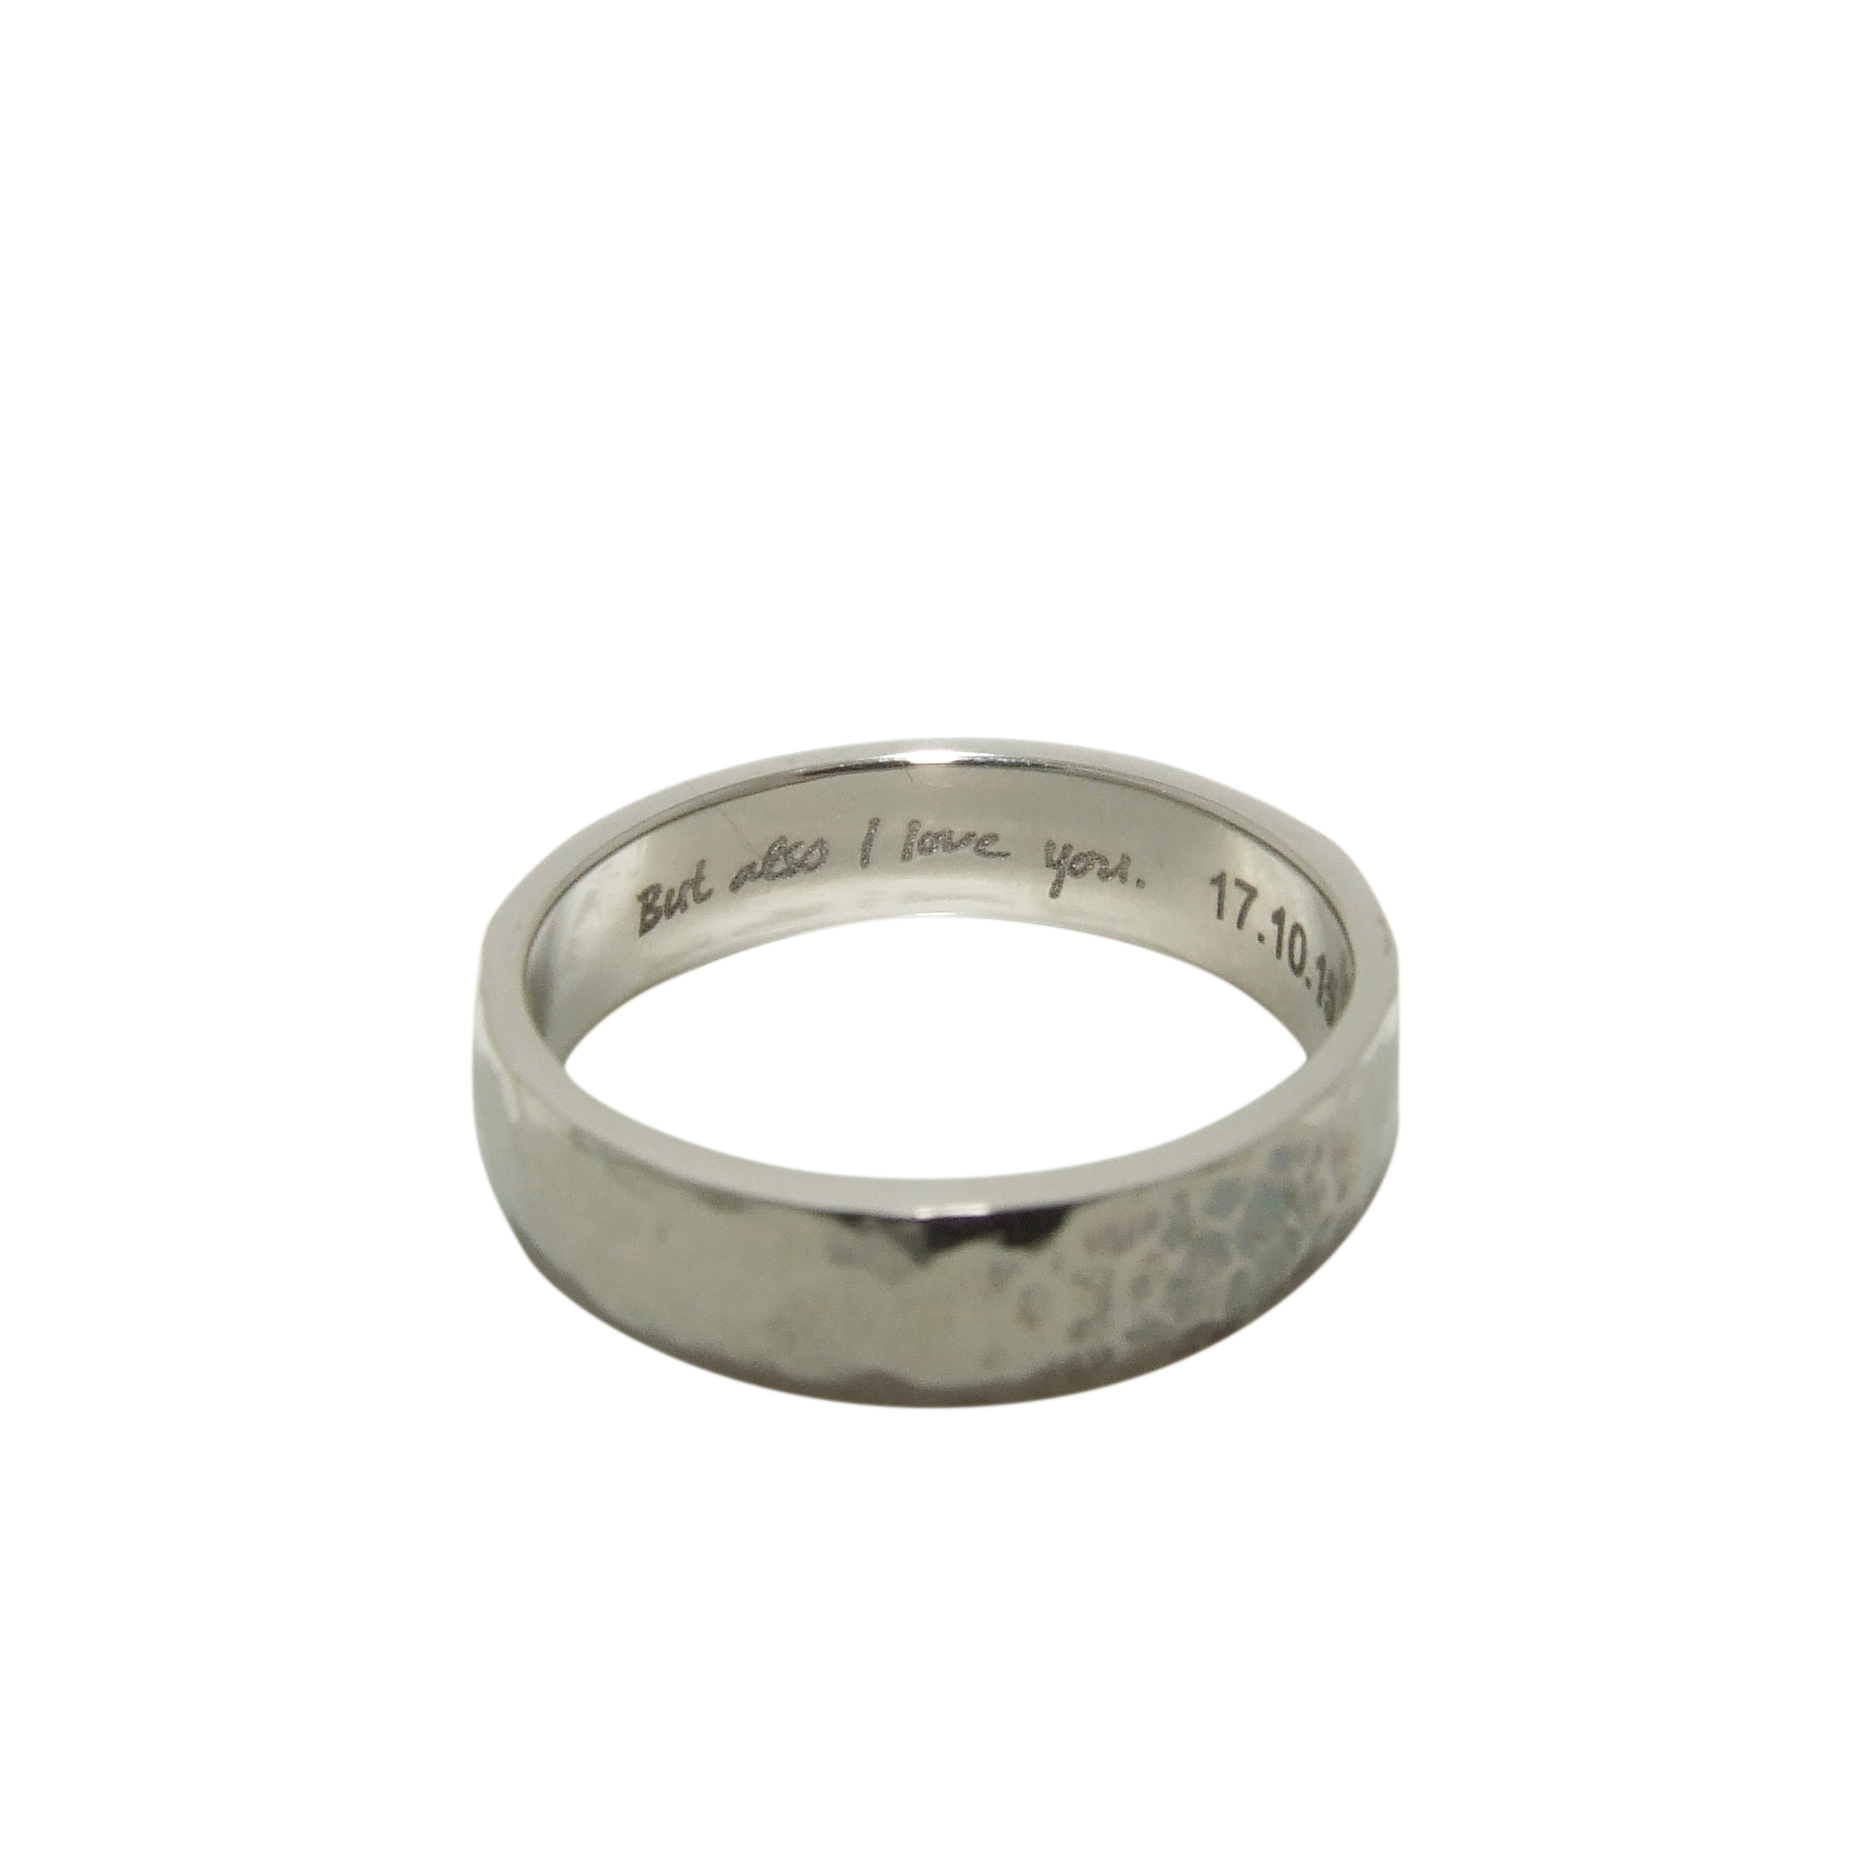 14k white gold hammered wedding band with personalized engraving